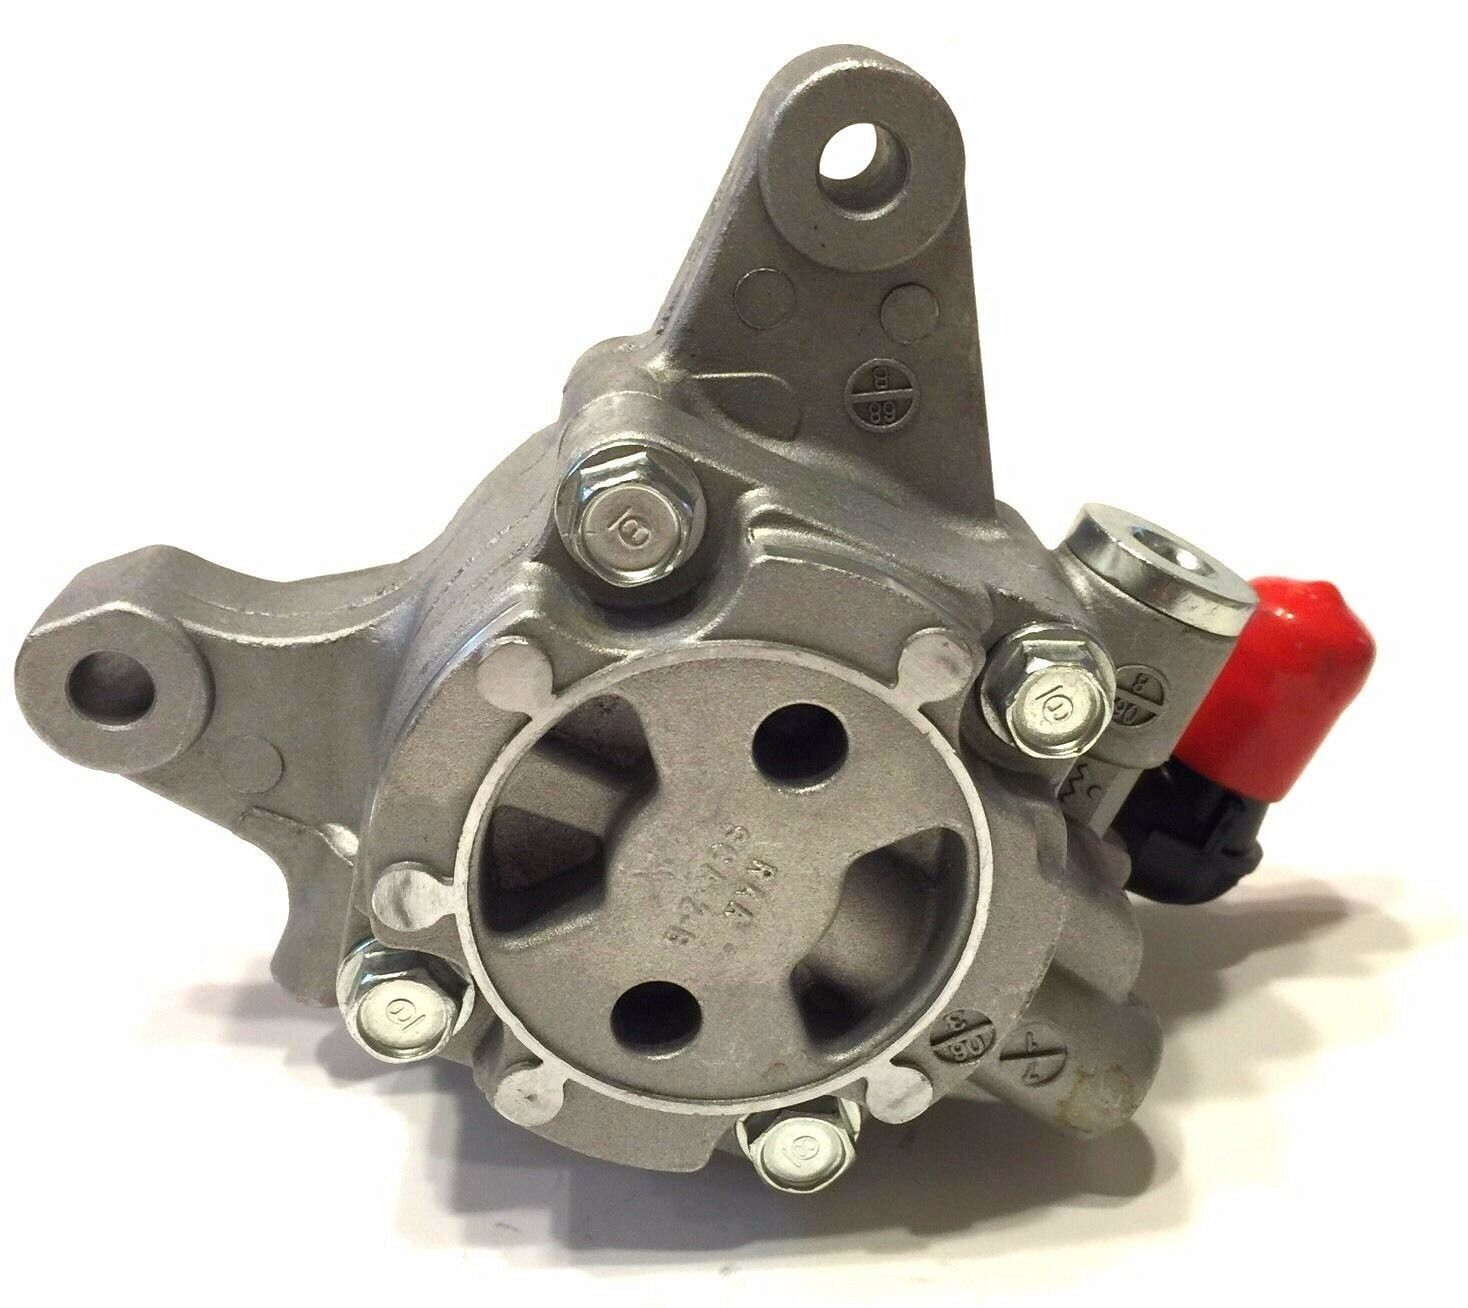 NEW Power Steering Pump 21-5415 For 04-05 Acura TSX 2.4L